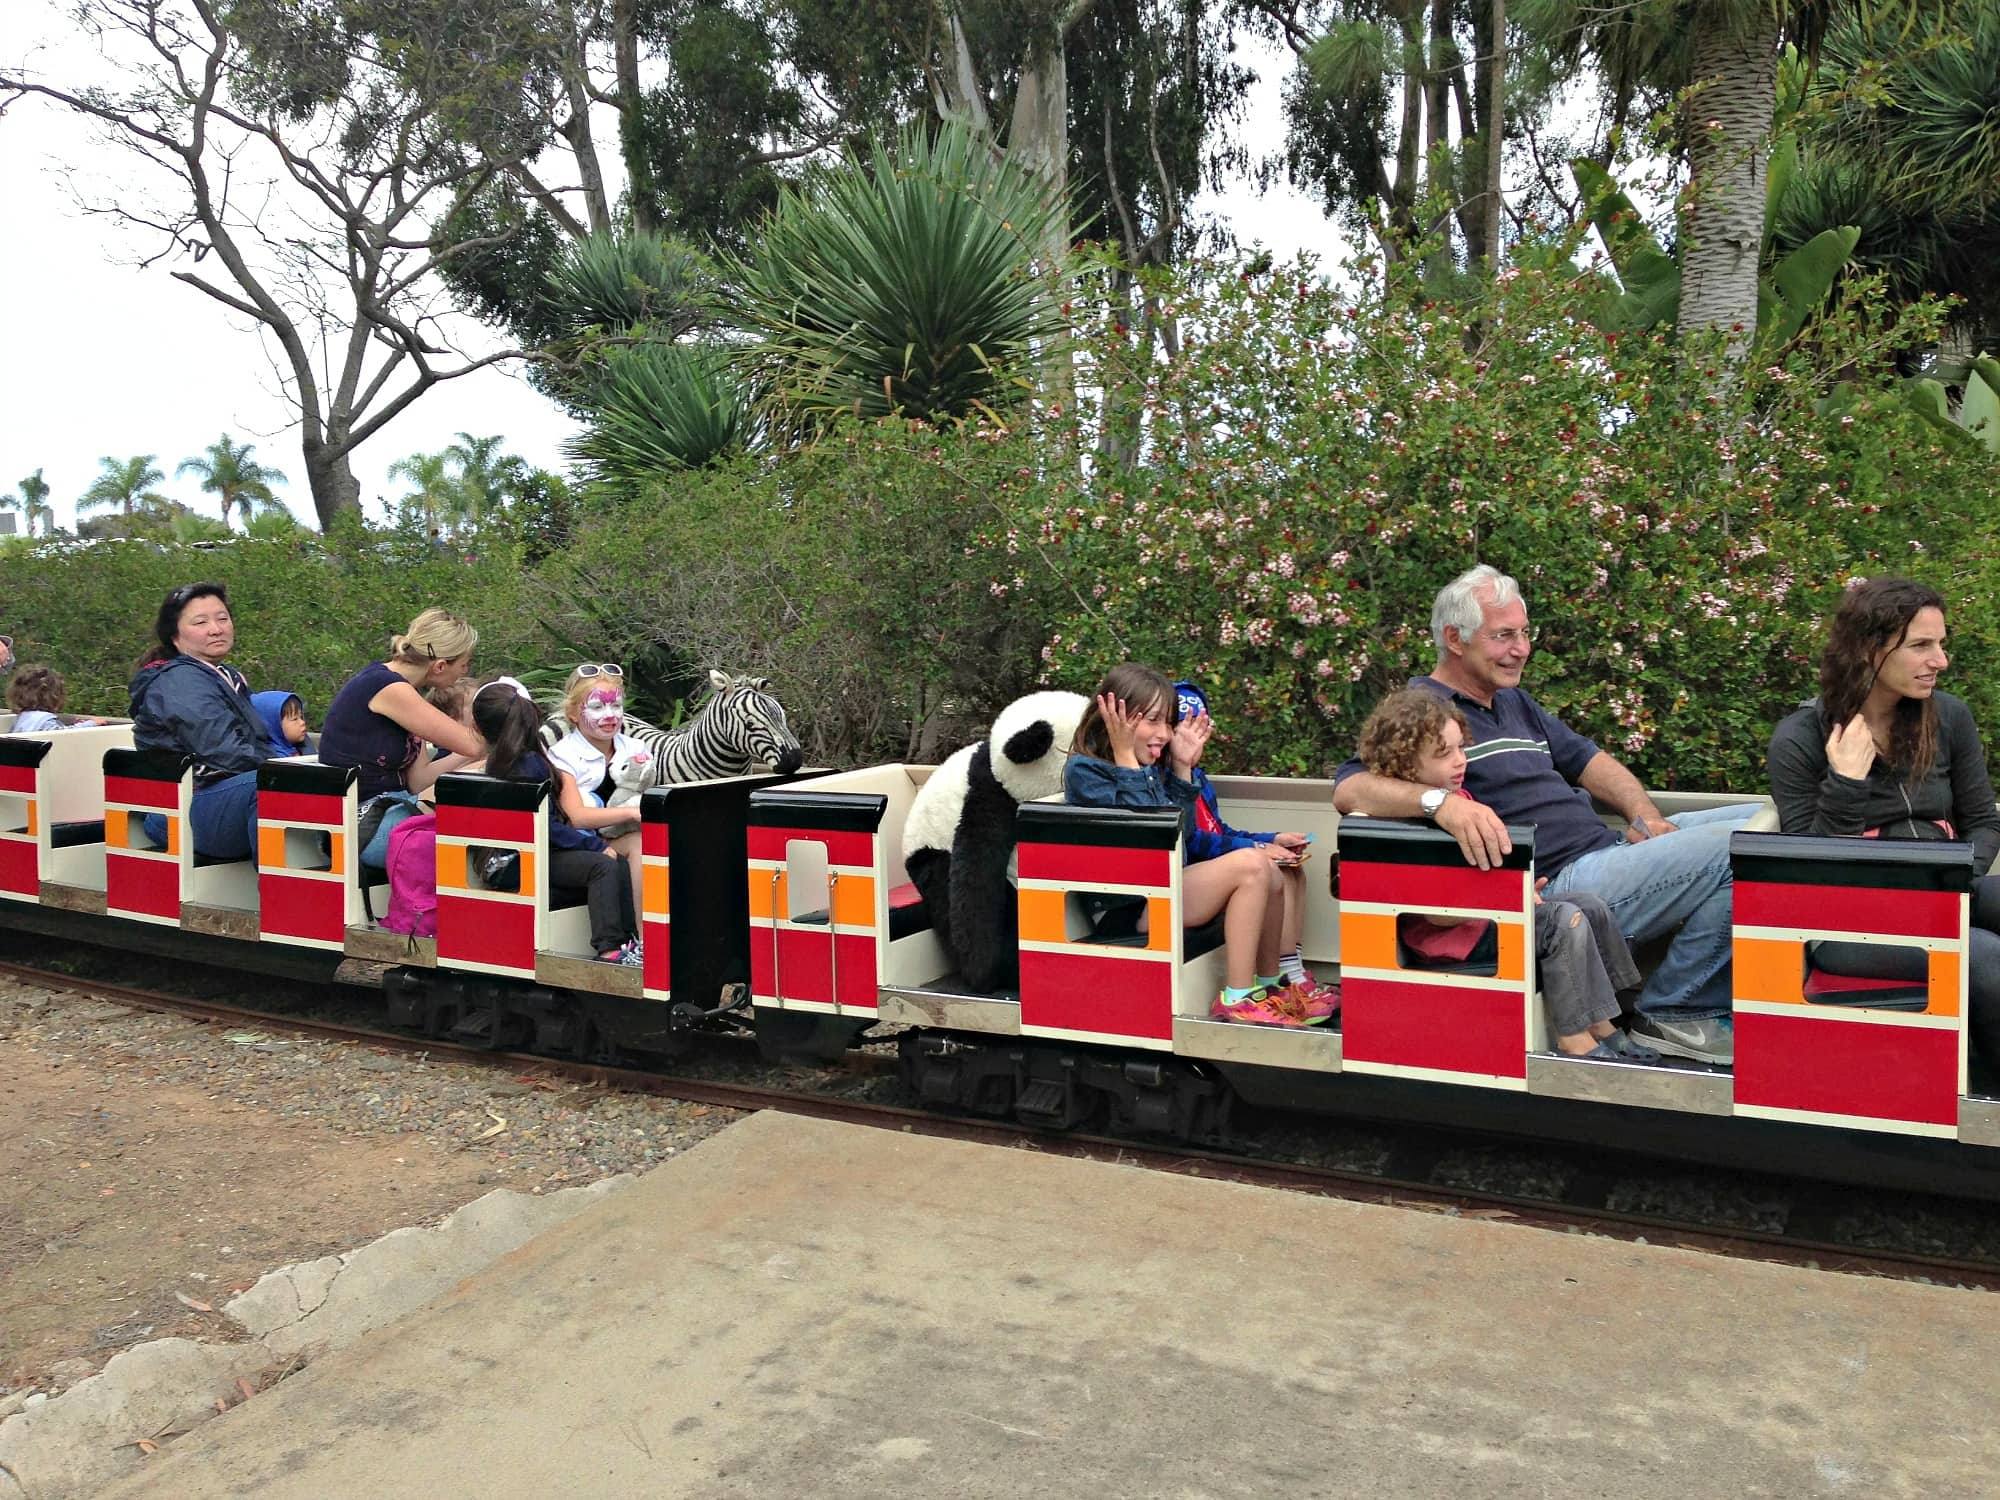 Top of your visit to the San Diego Zoo with kids with a ride on the Balboa Park Railroad